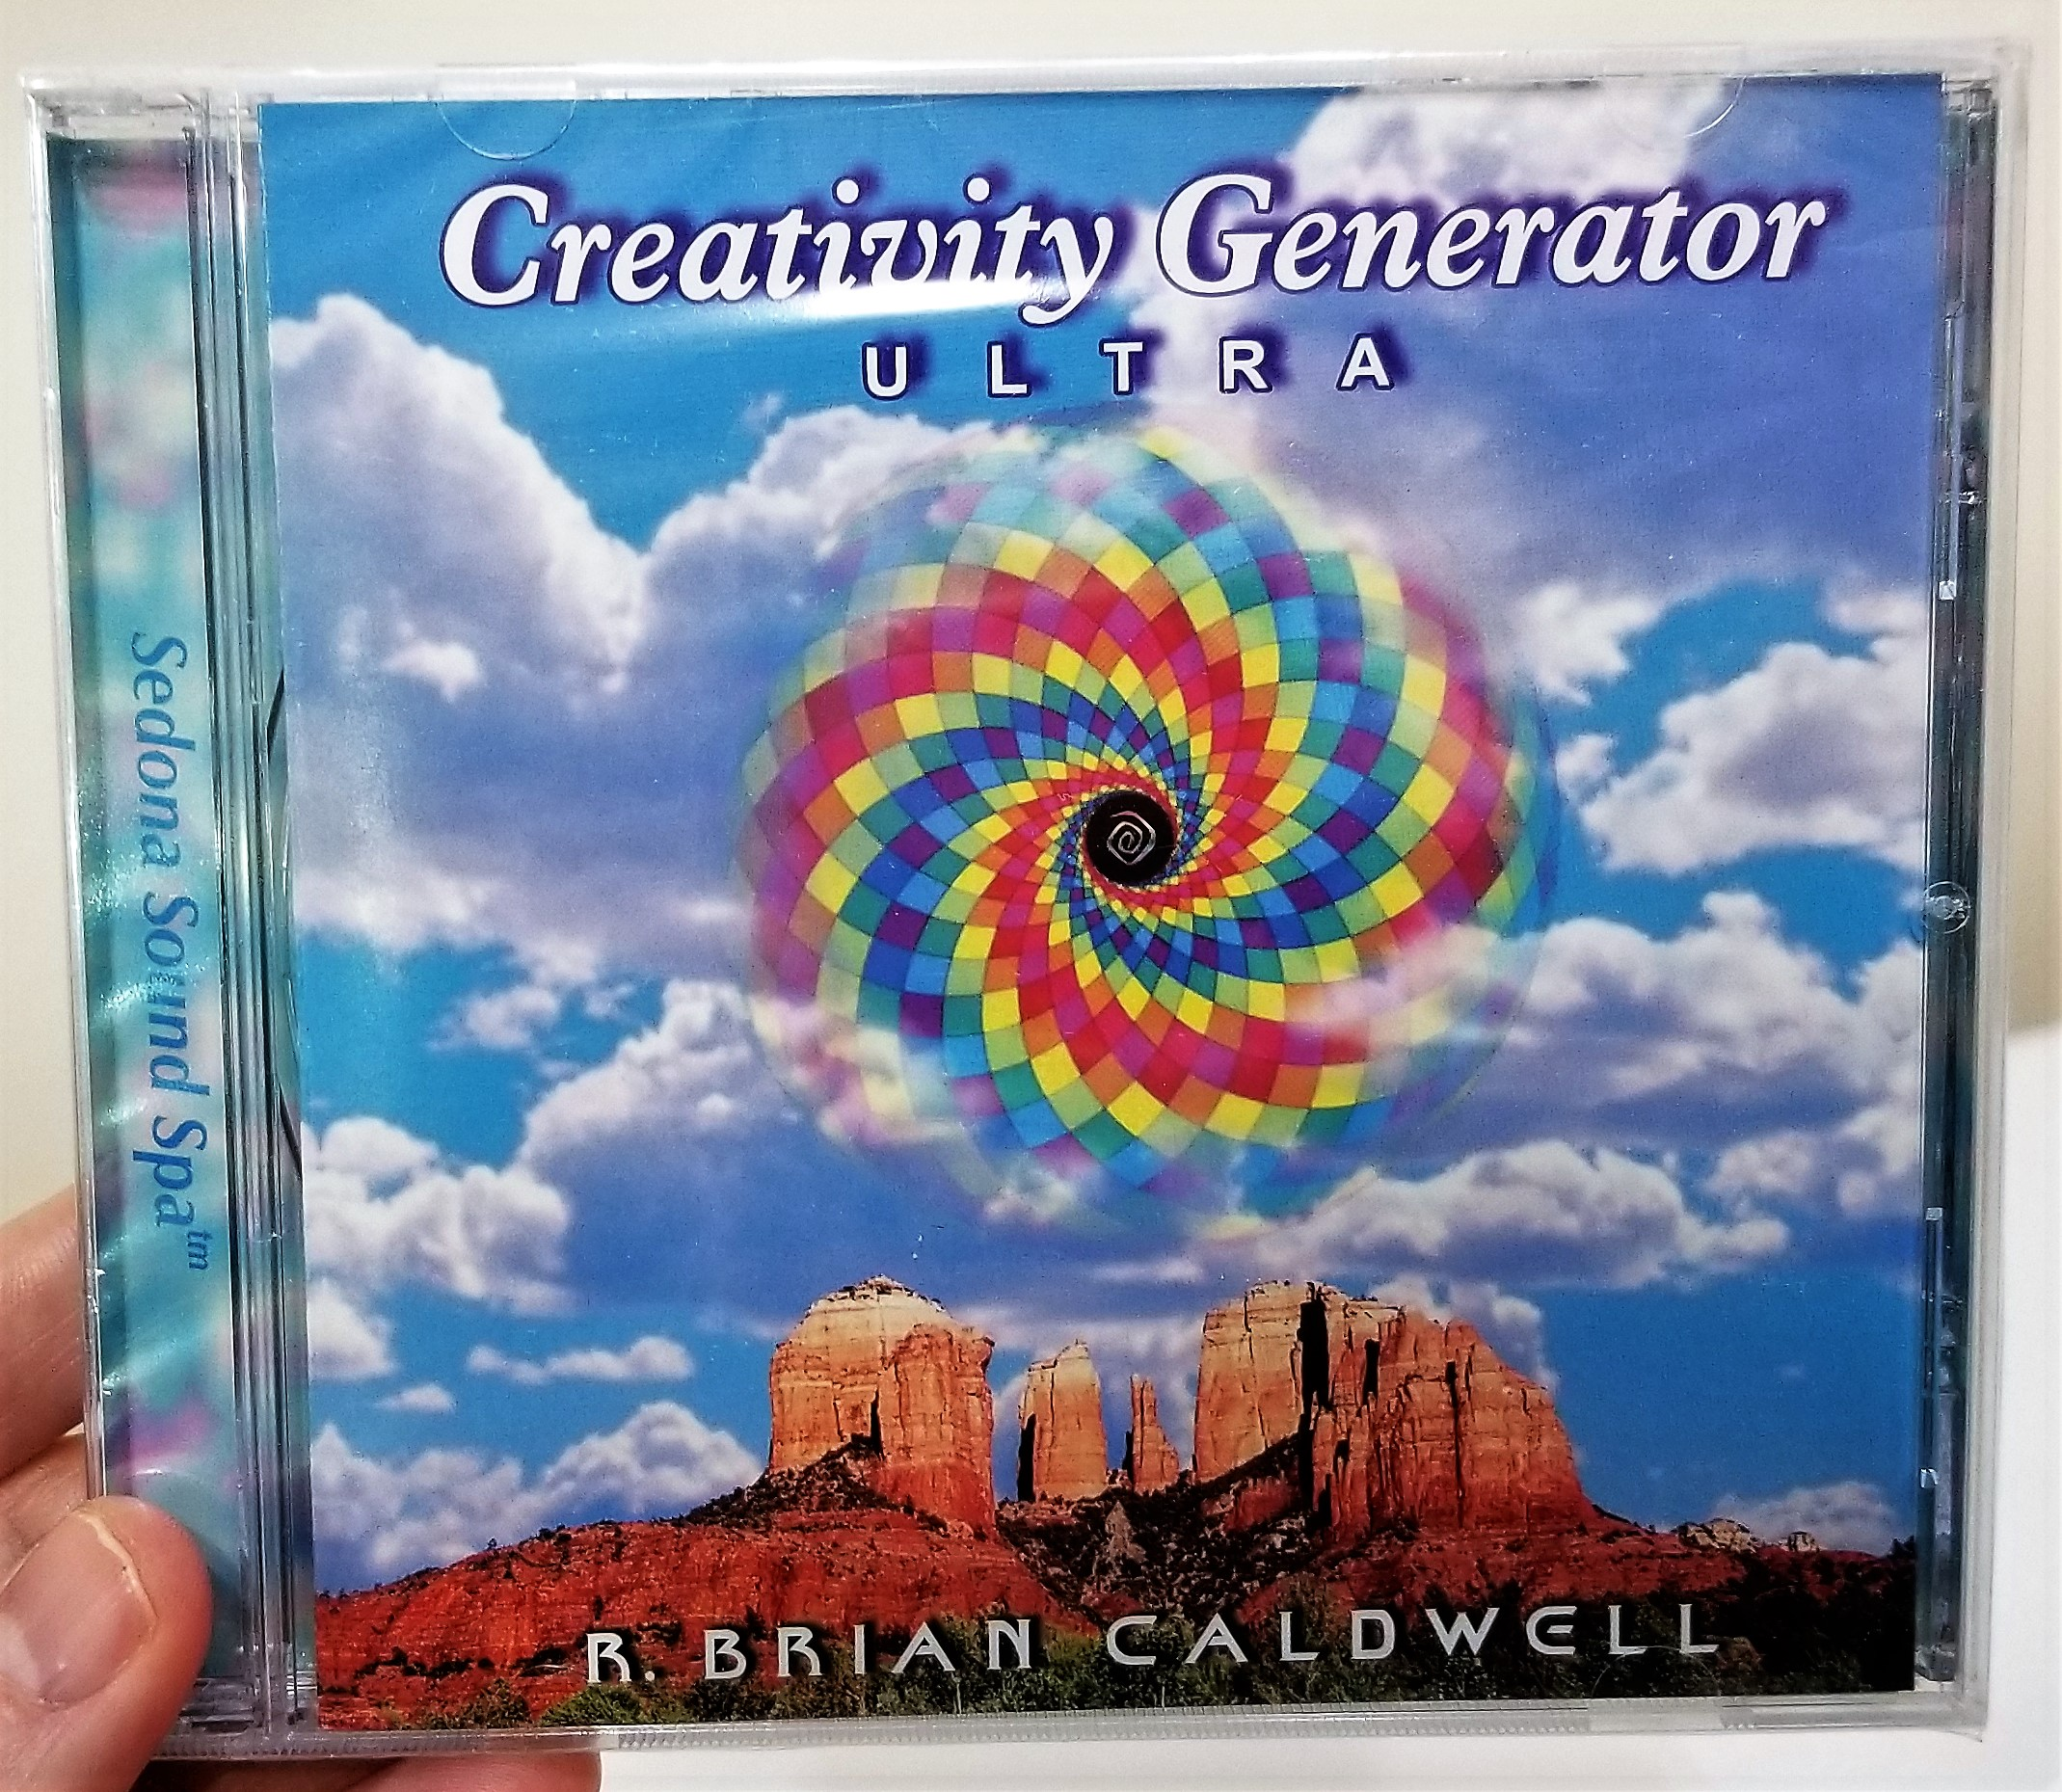 Creativity Generator CD by Brian Caldwell